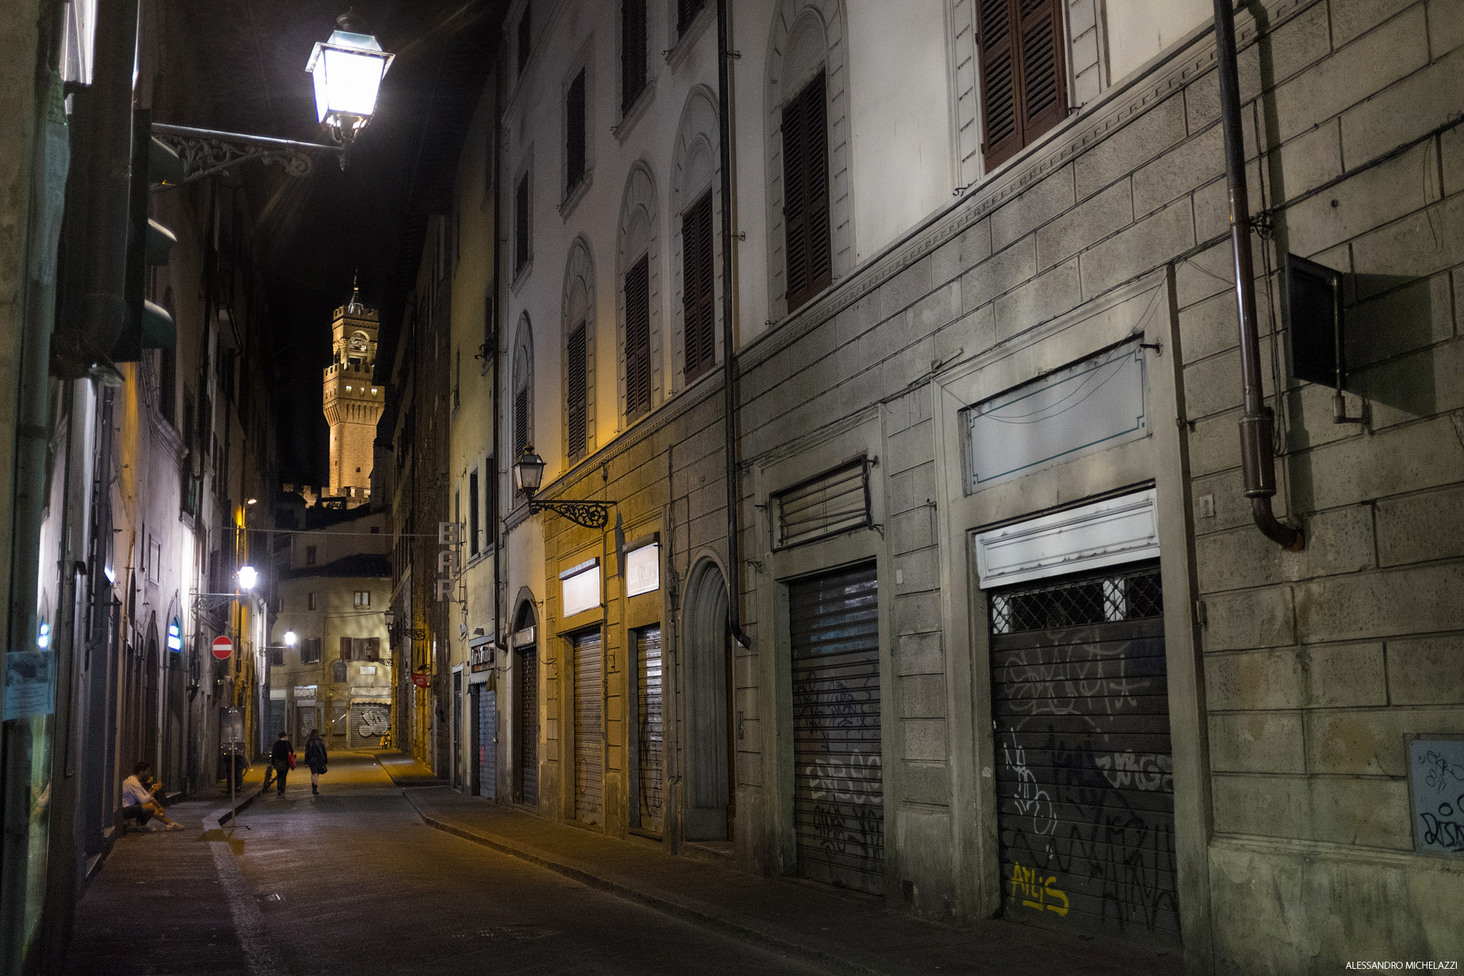 Firenze By Night, Fuji X100s by Alessandro Michelazzi